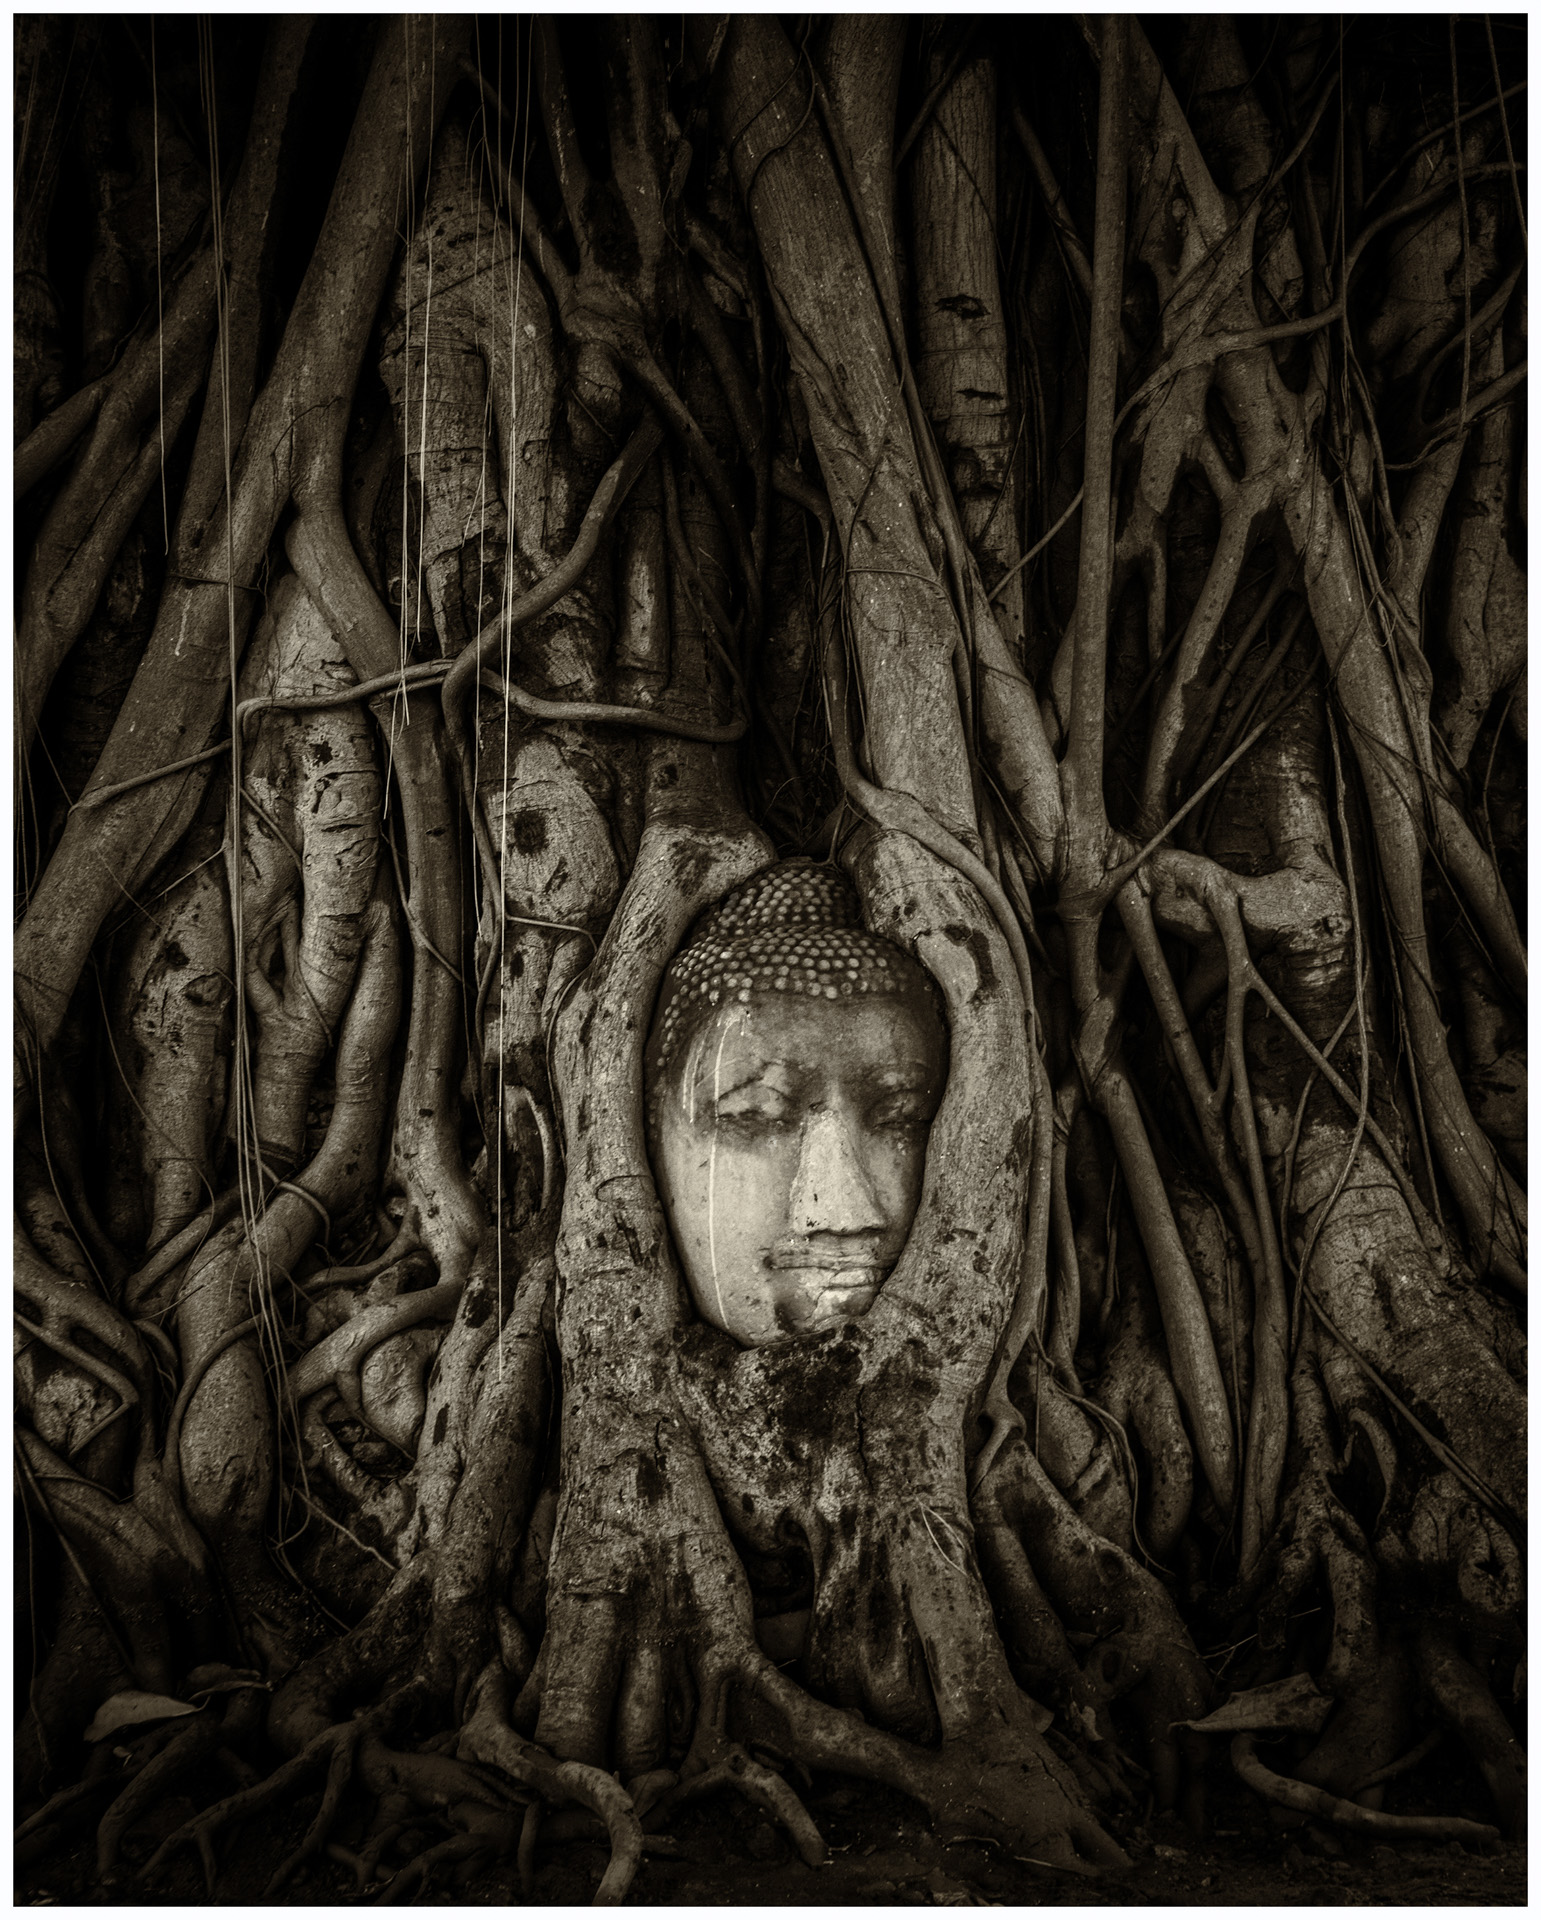 Buddha Head Entwined in Tree Roots - Monochrome Print (Open) - Name Withheld Per Request